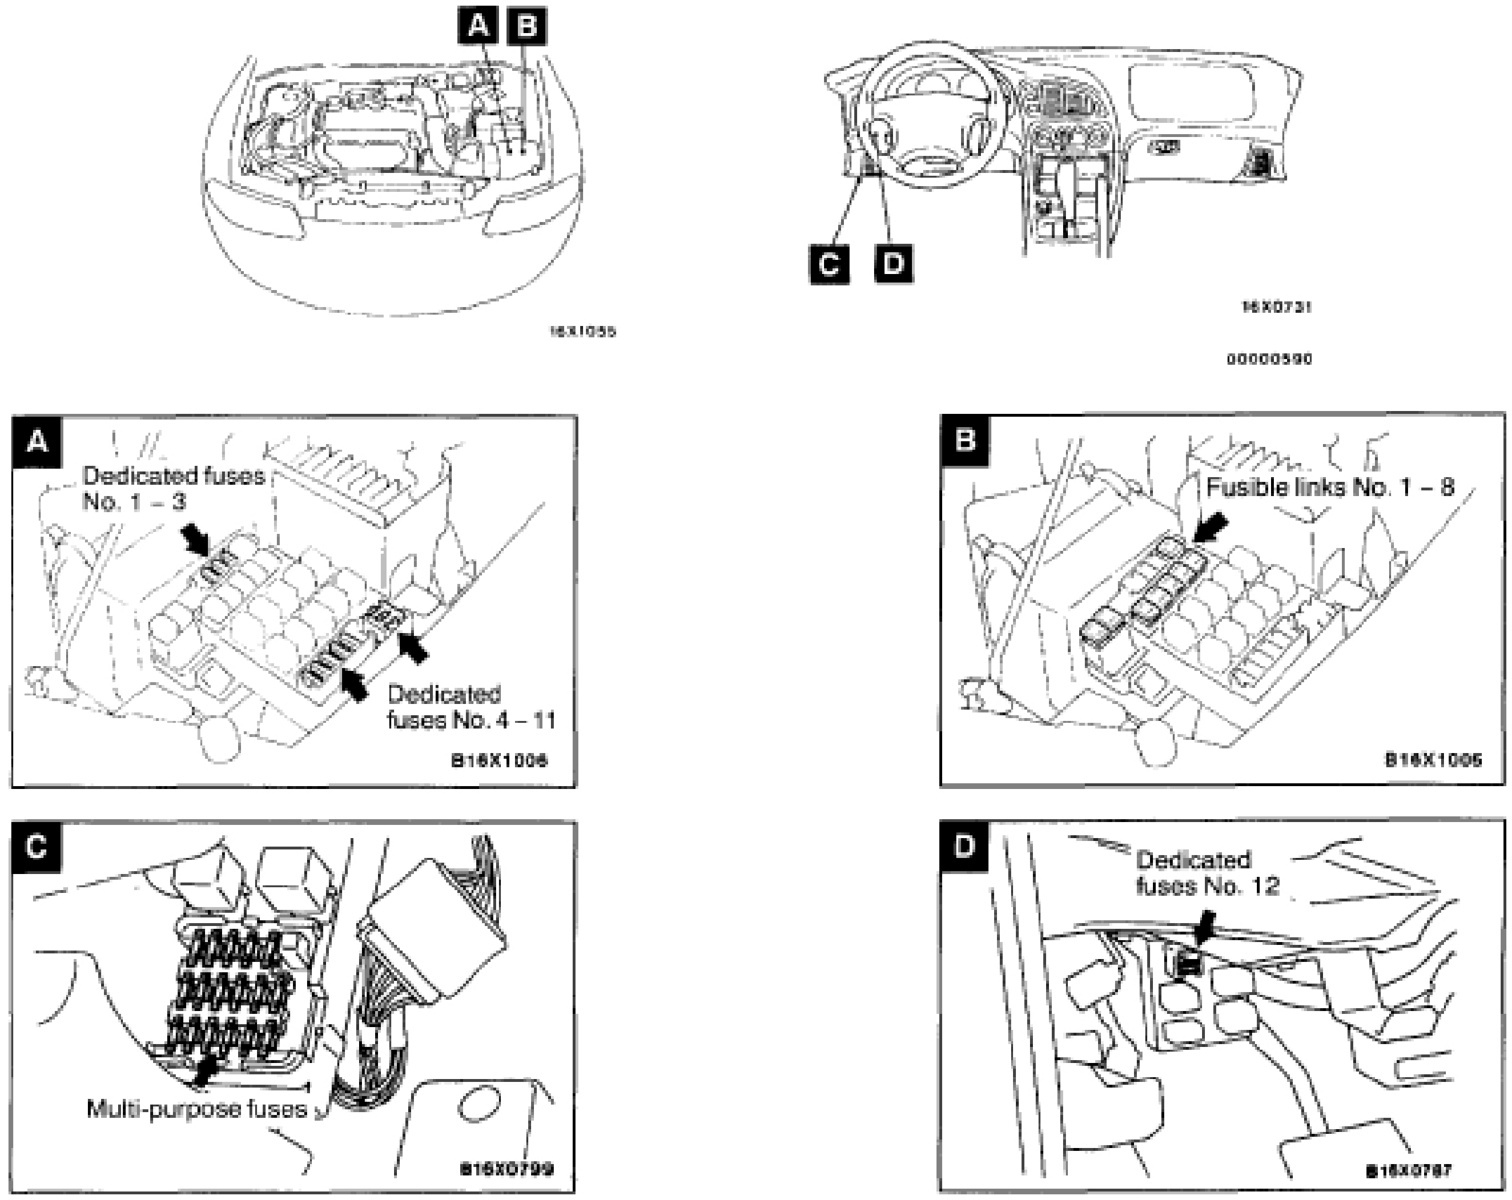 Fuse Box Location On 2008 Ford Mustang Archive Of Automotive Wiring Diagram Sebring About Rh Medijagmbbs Com